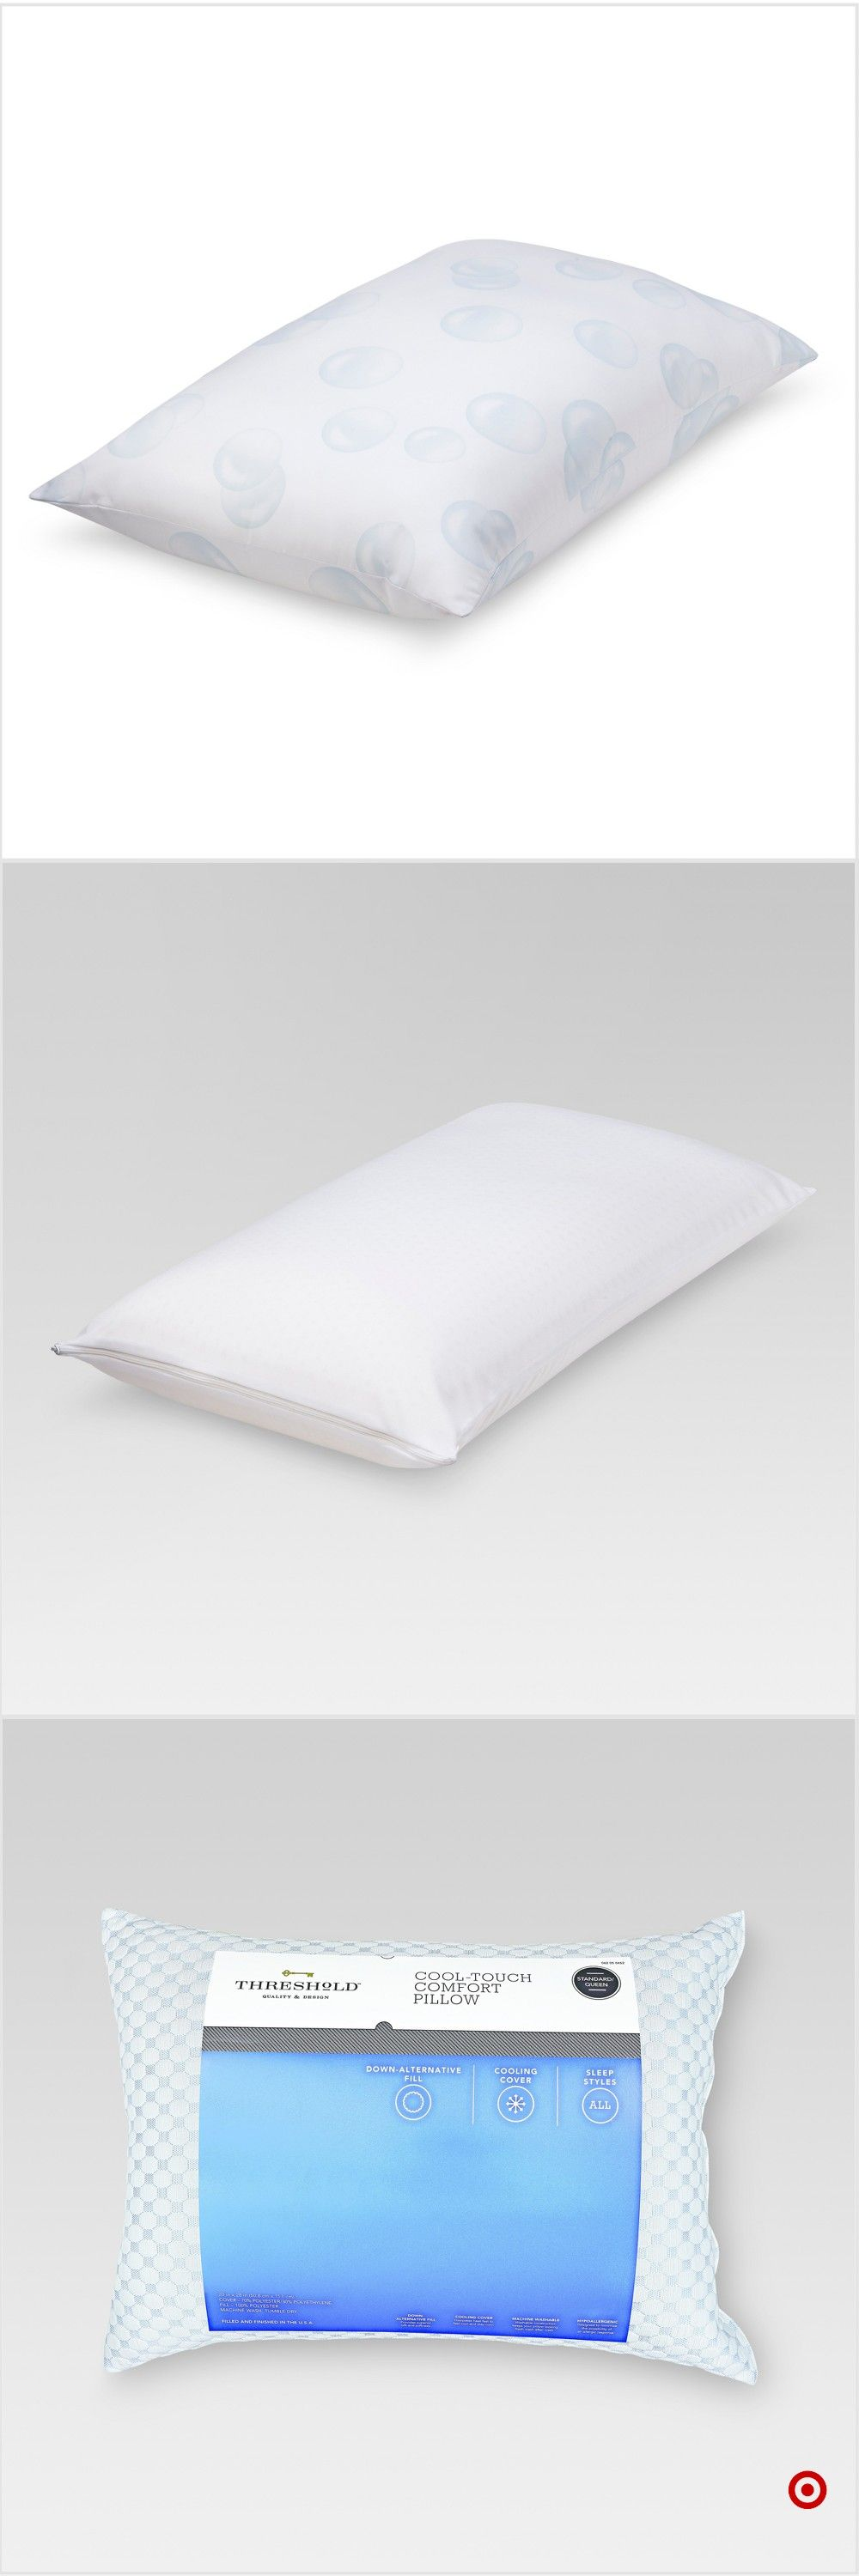 Shop Target For Bed Pillows You Will Love At Great Low Prices